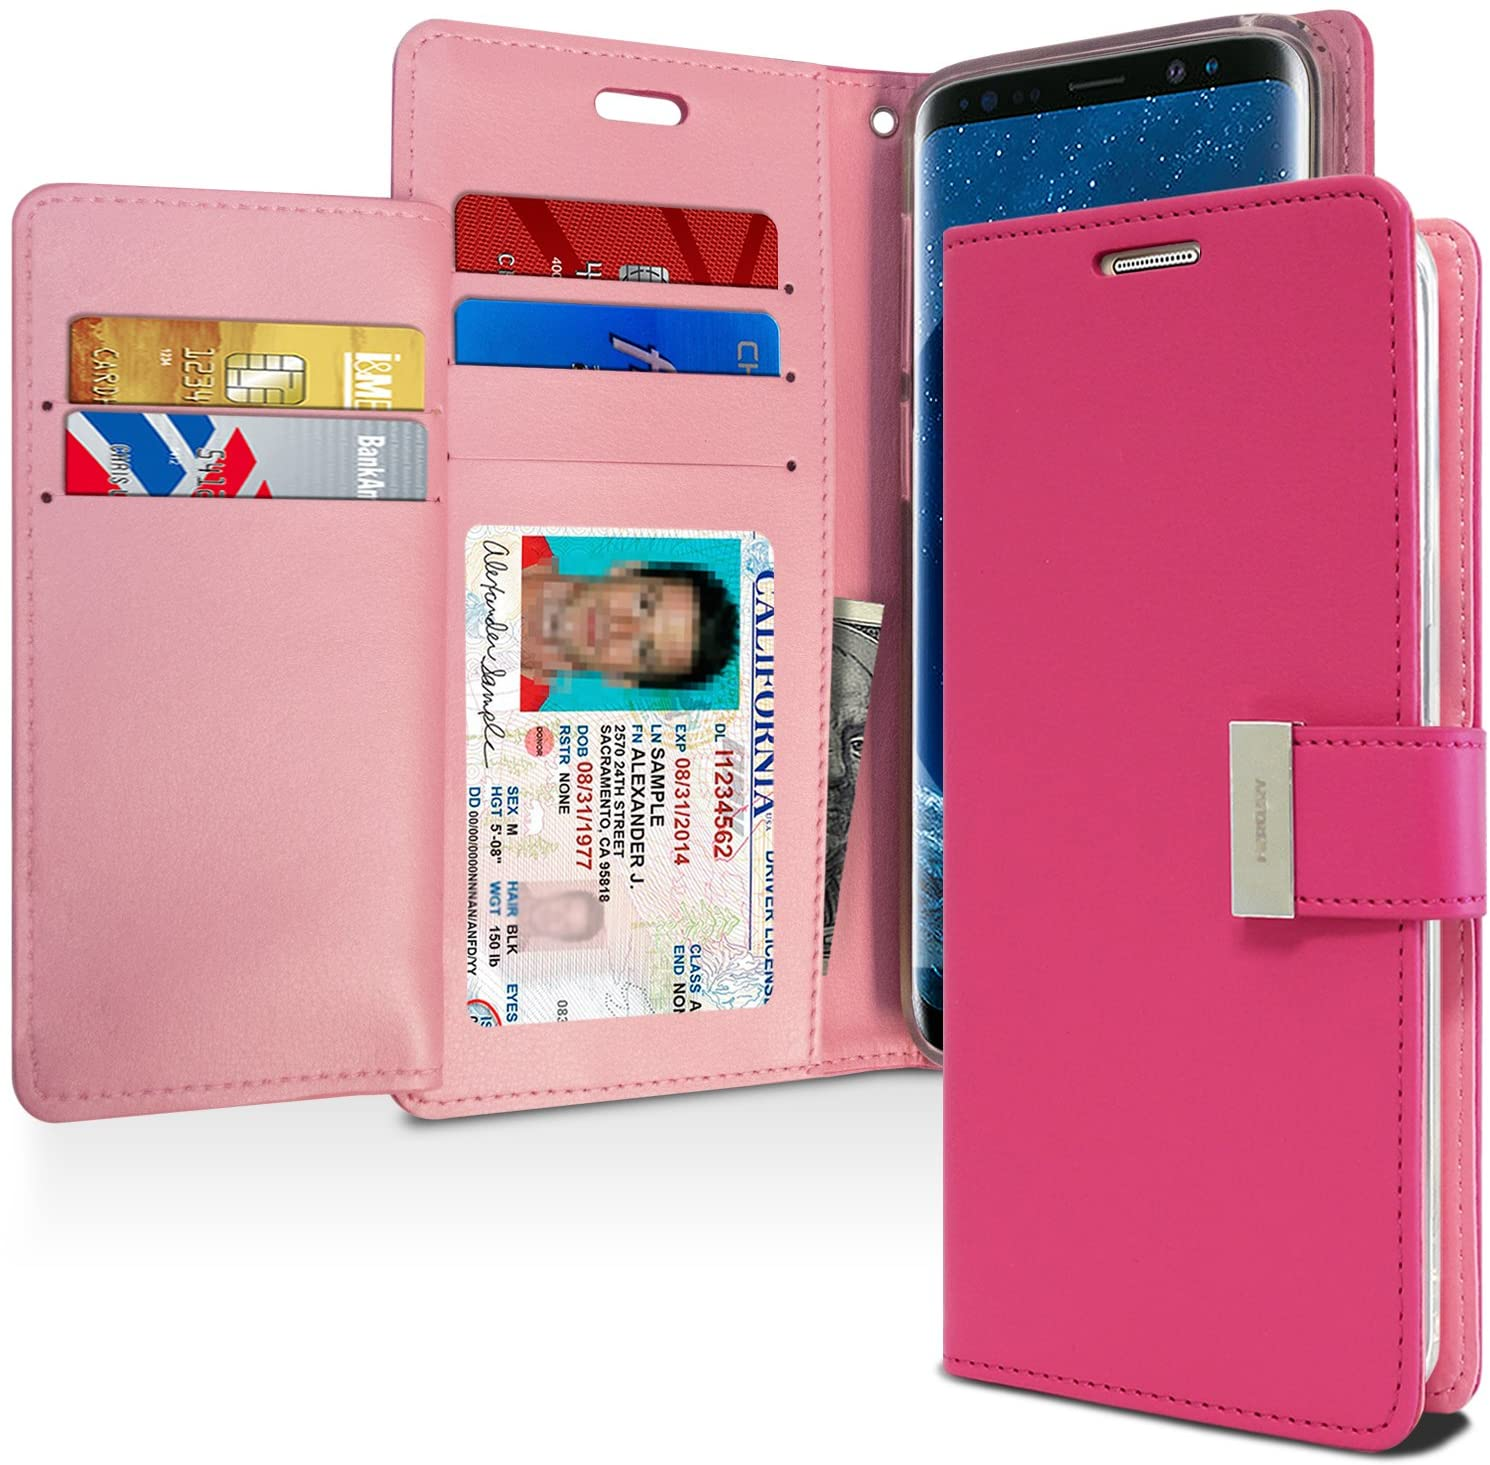 Goospery Rich Wallet for Samsung Galaxy S9 Case (2018) Extra Card Slots Leather Flip Cover (Hot Pink) S9-RIC-HPNK